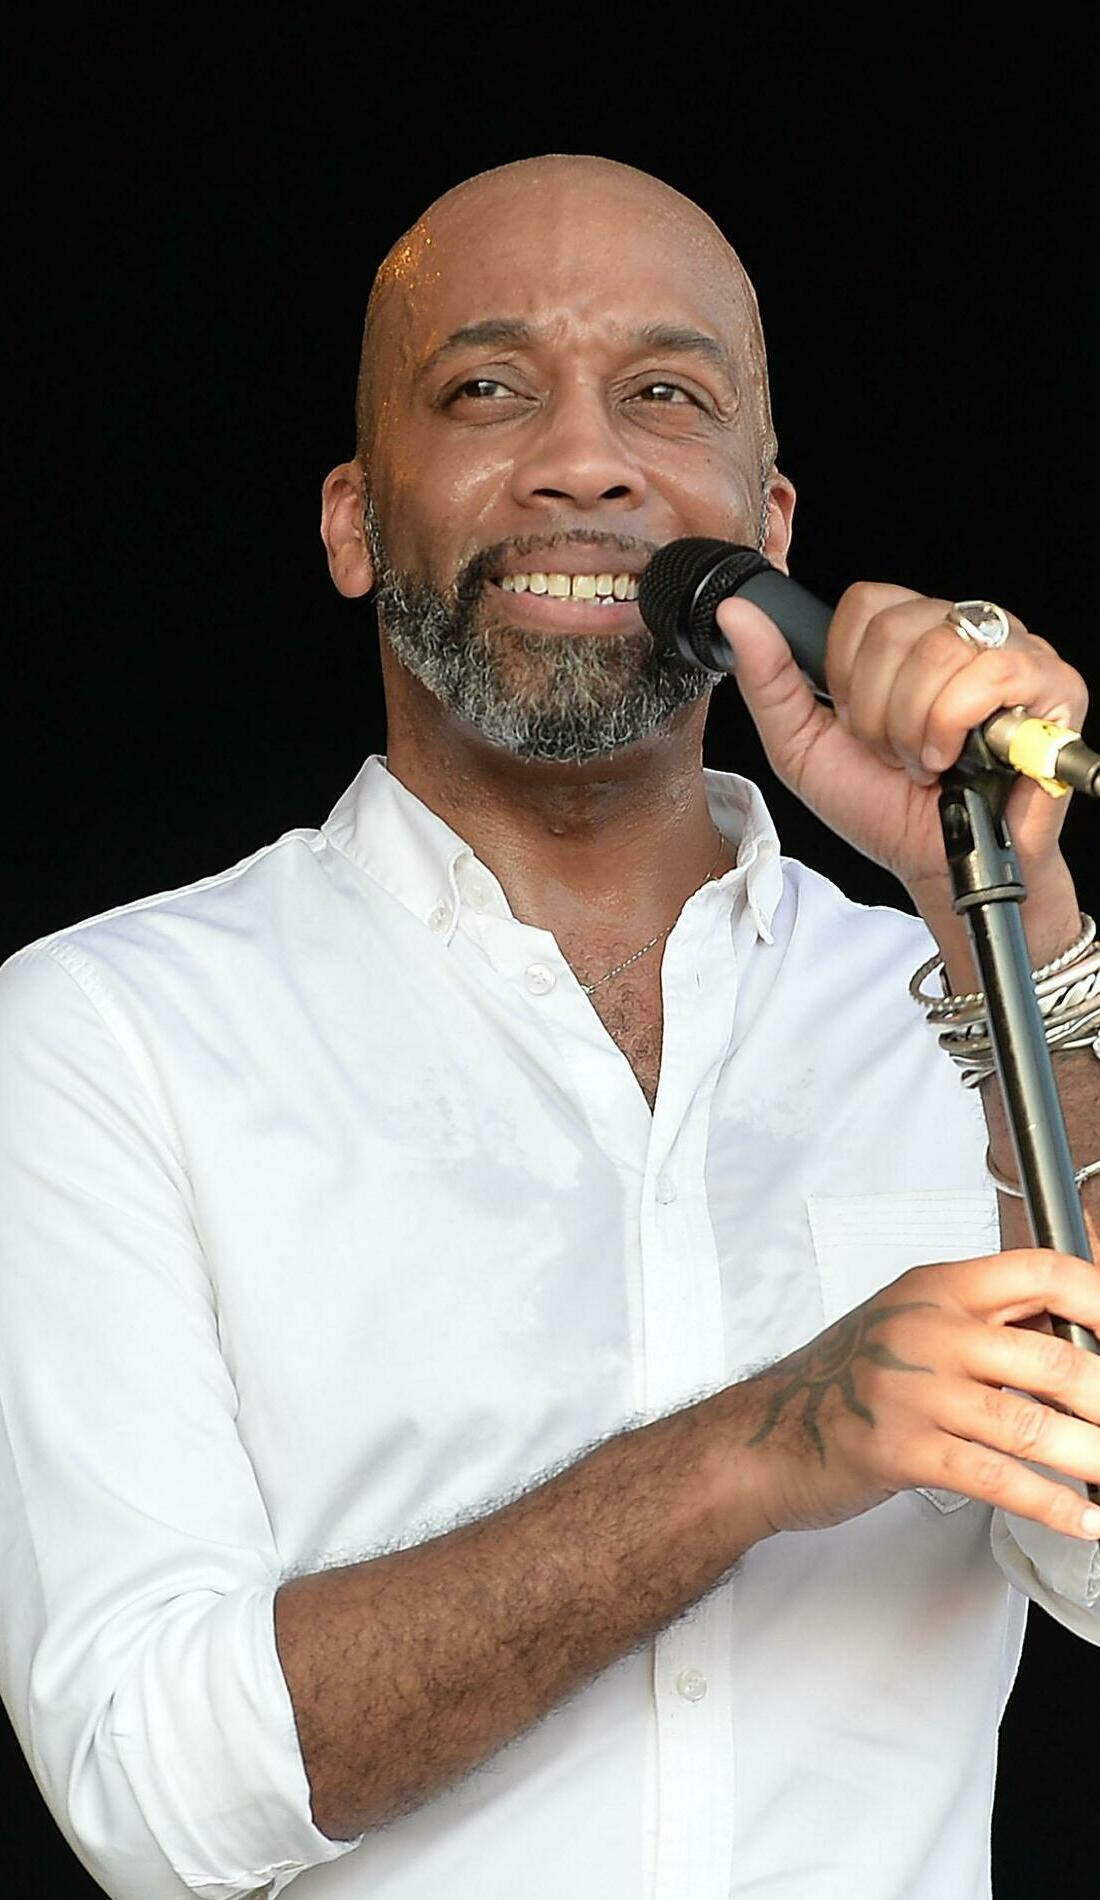 A Rahsaan Patterson live event